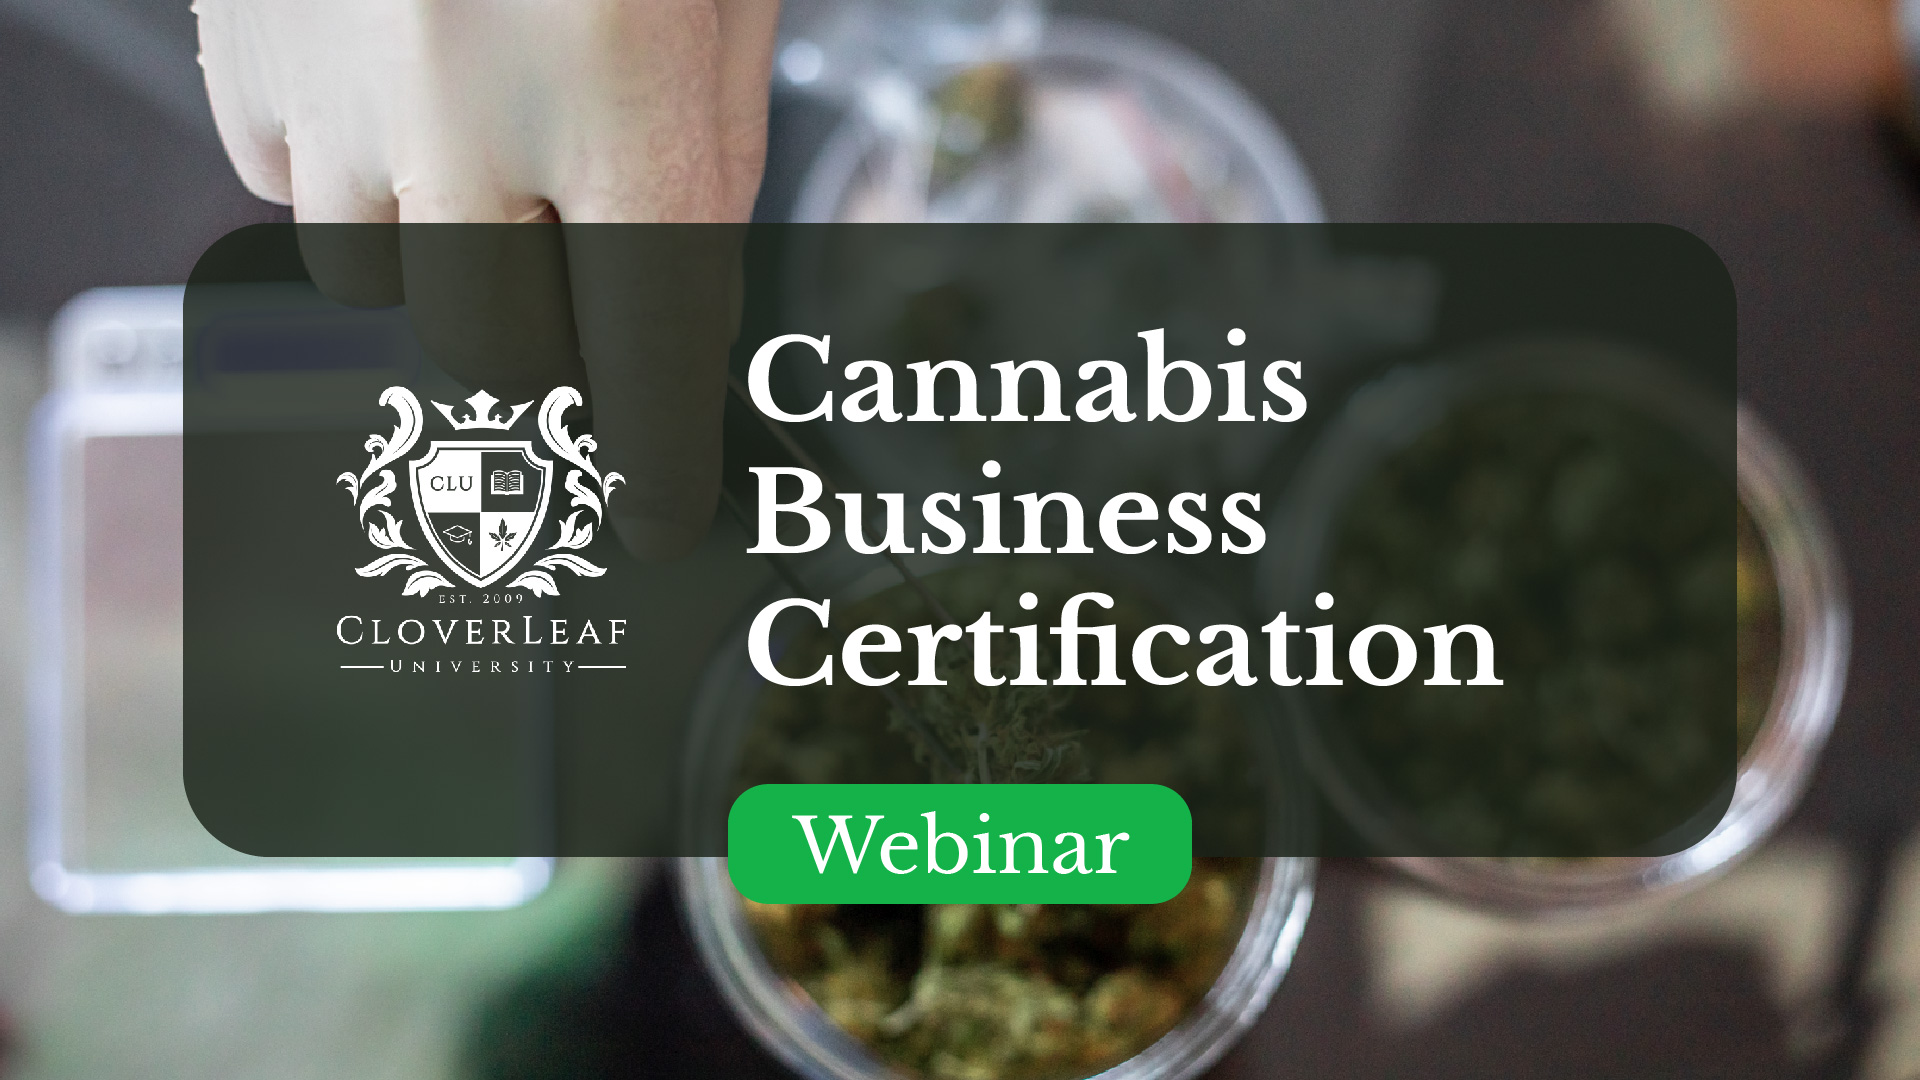 Cannabis Business Program Certification  - Webinar